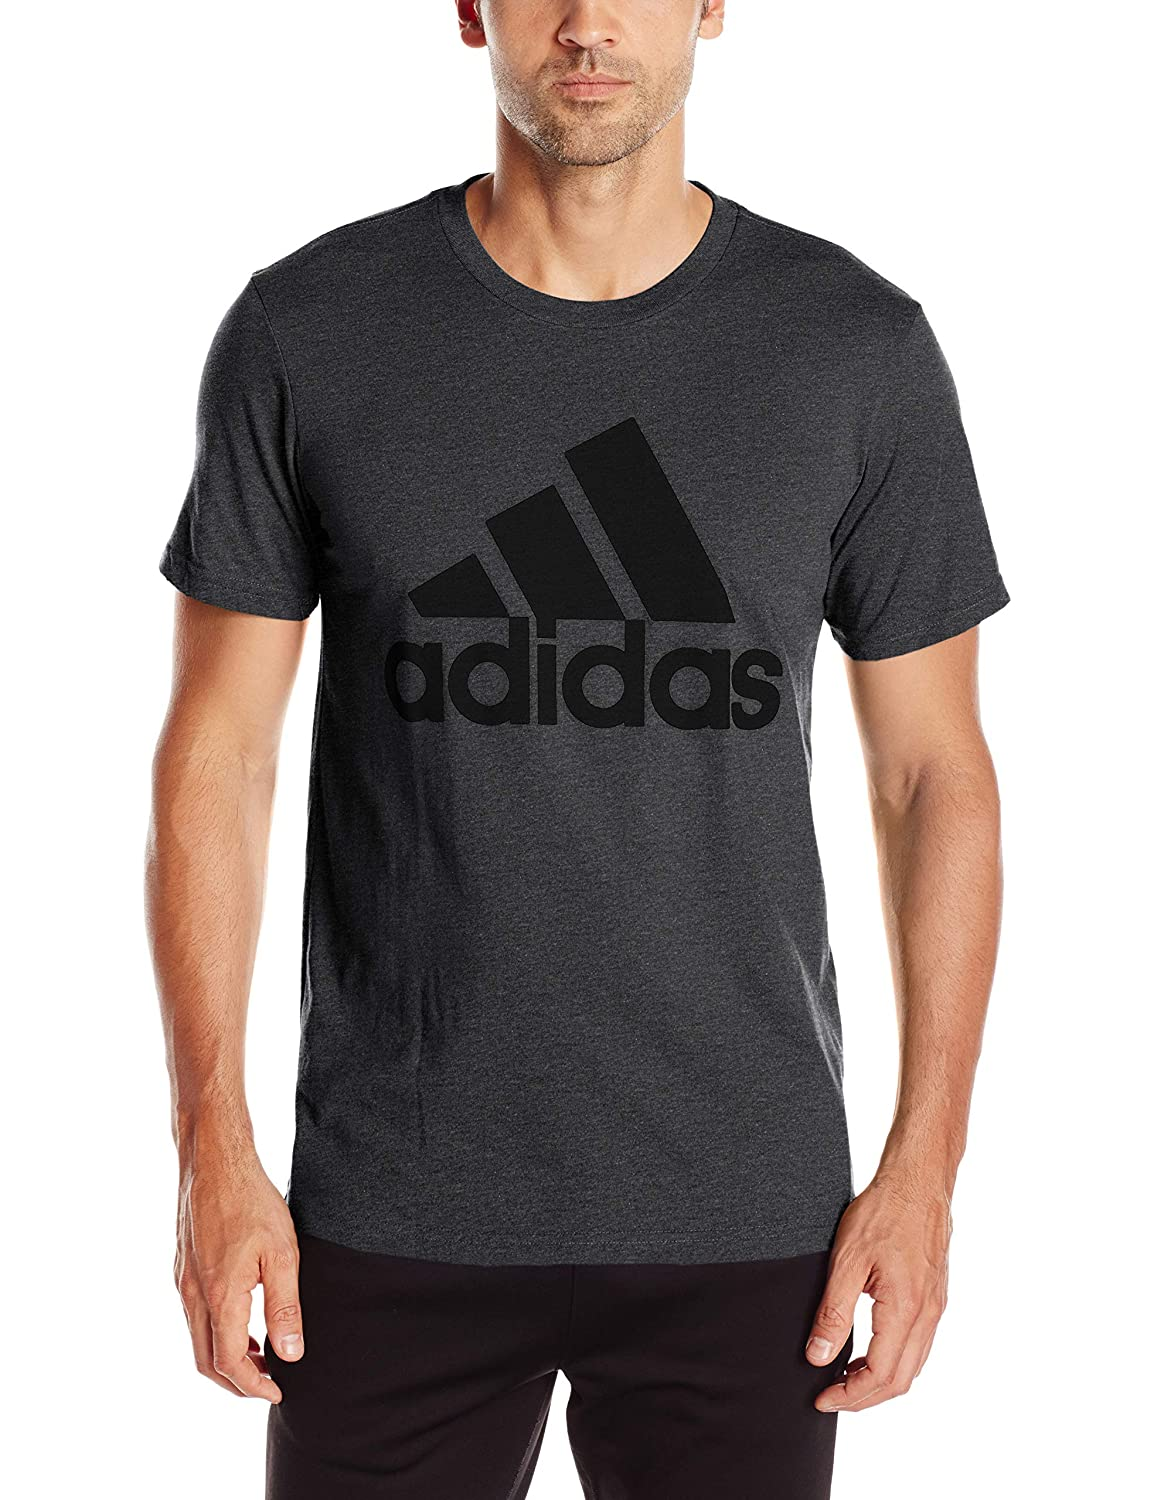 adidas Men's Badge of Sport Graphic Tee adidas Inline Apparel Child Code (Sports Apparel F16AXGM130